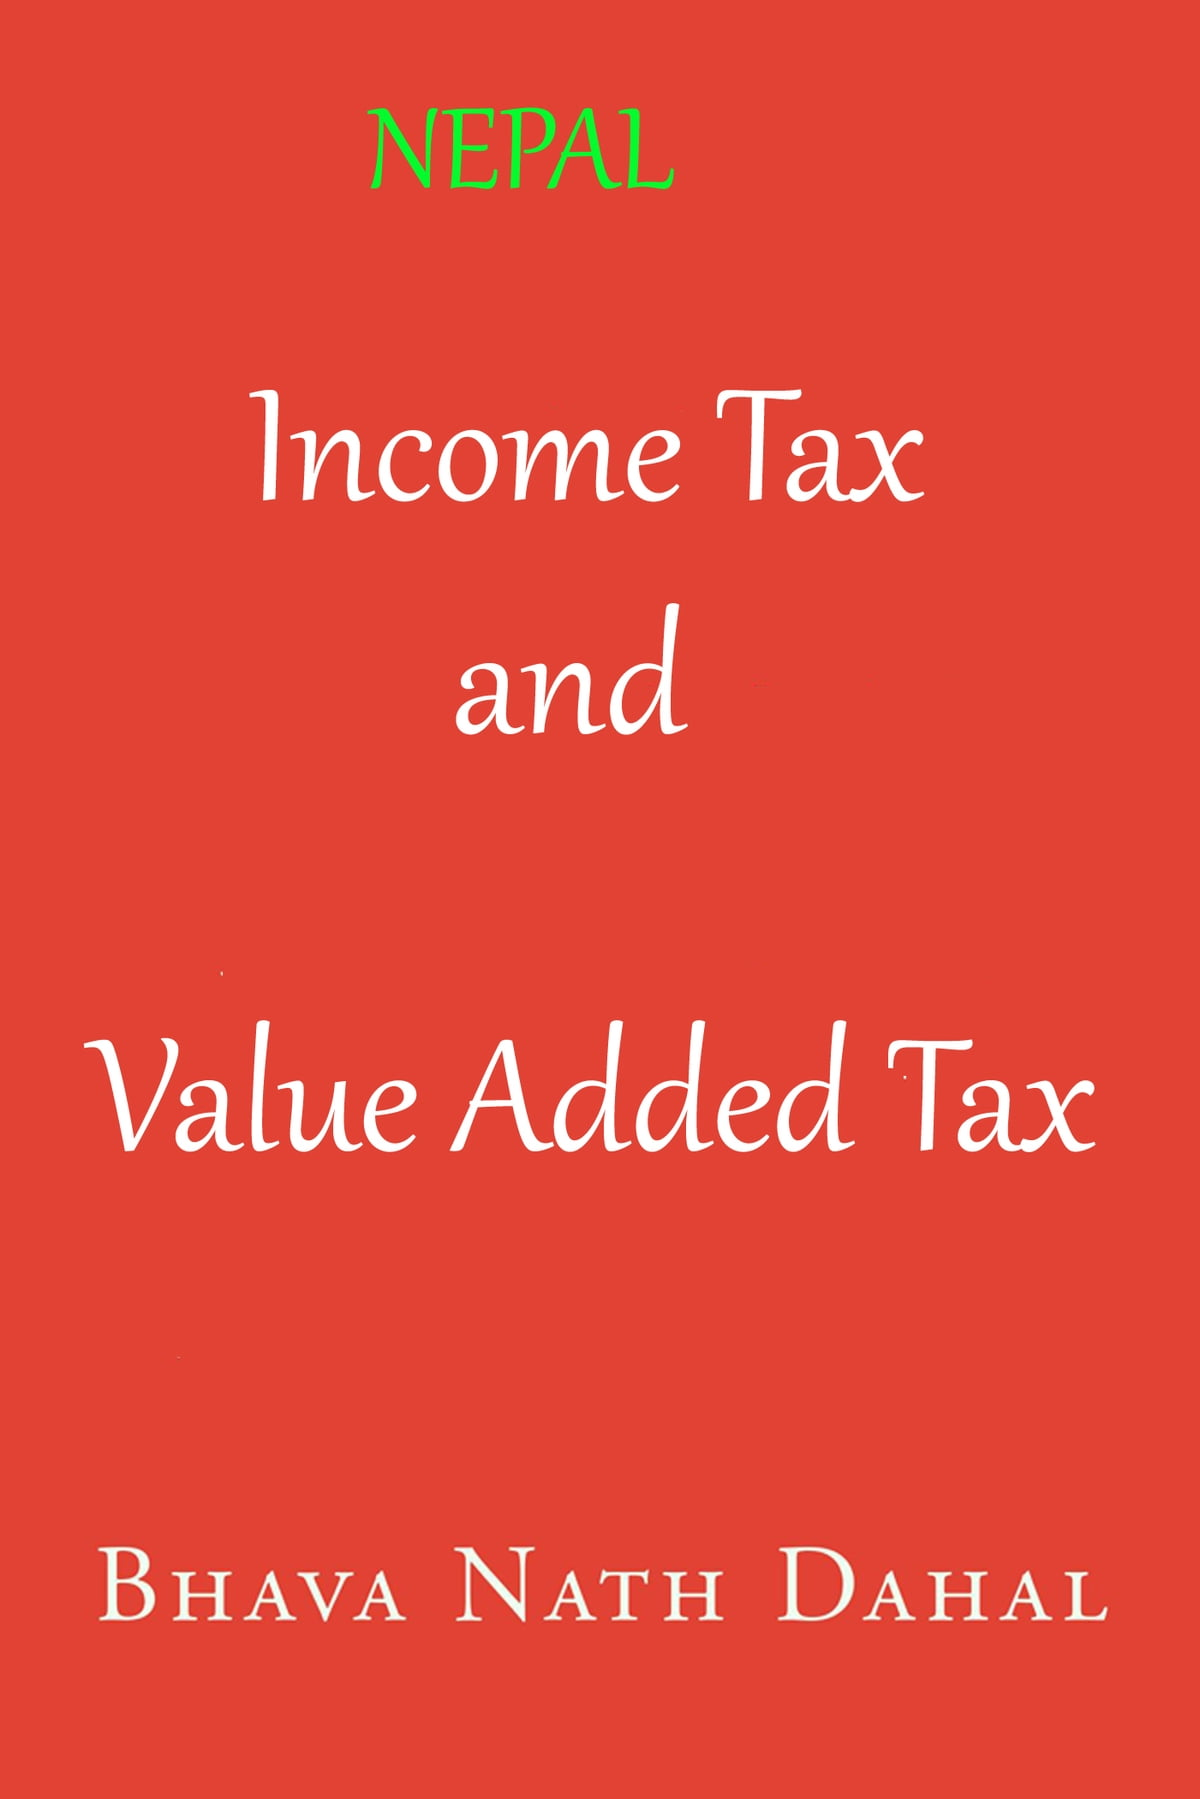 Income Tax And Value Added Tax In Nepal Ebook By Bhava Nath Dahal Rakuten Kobo